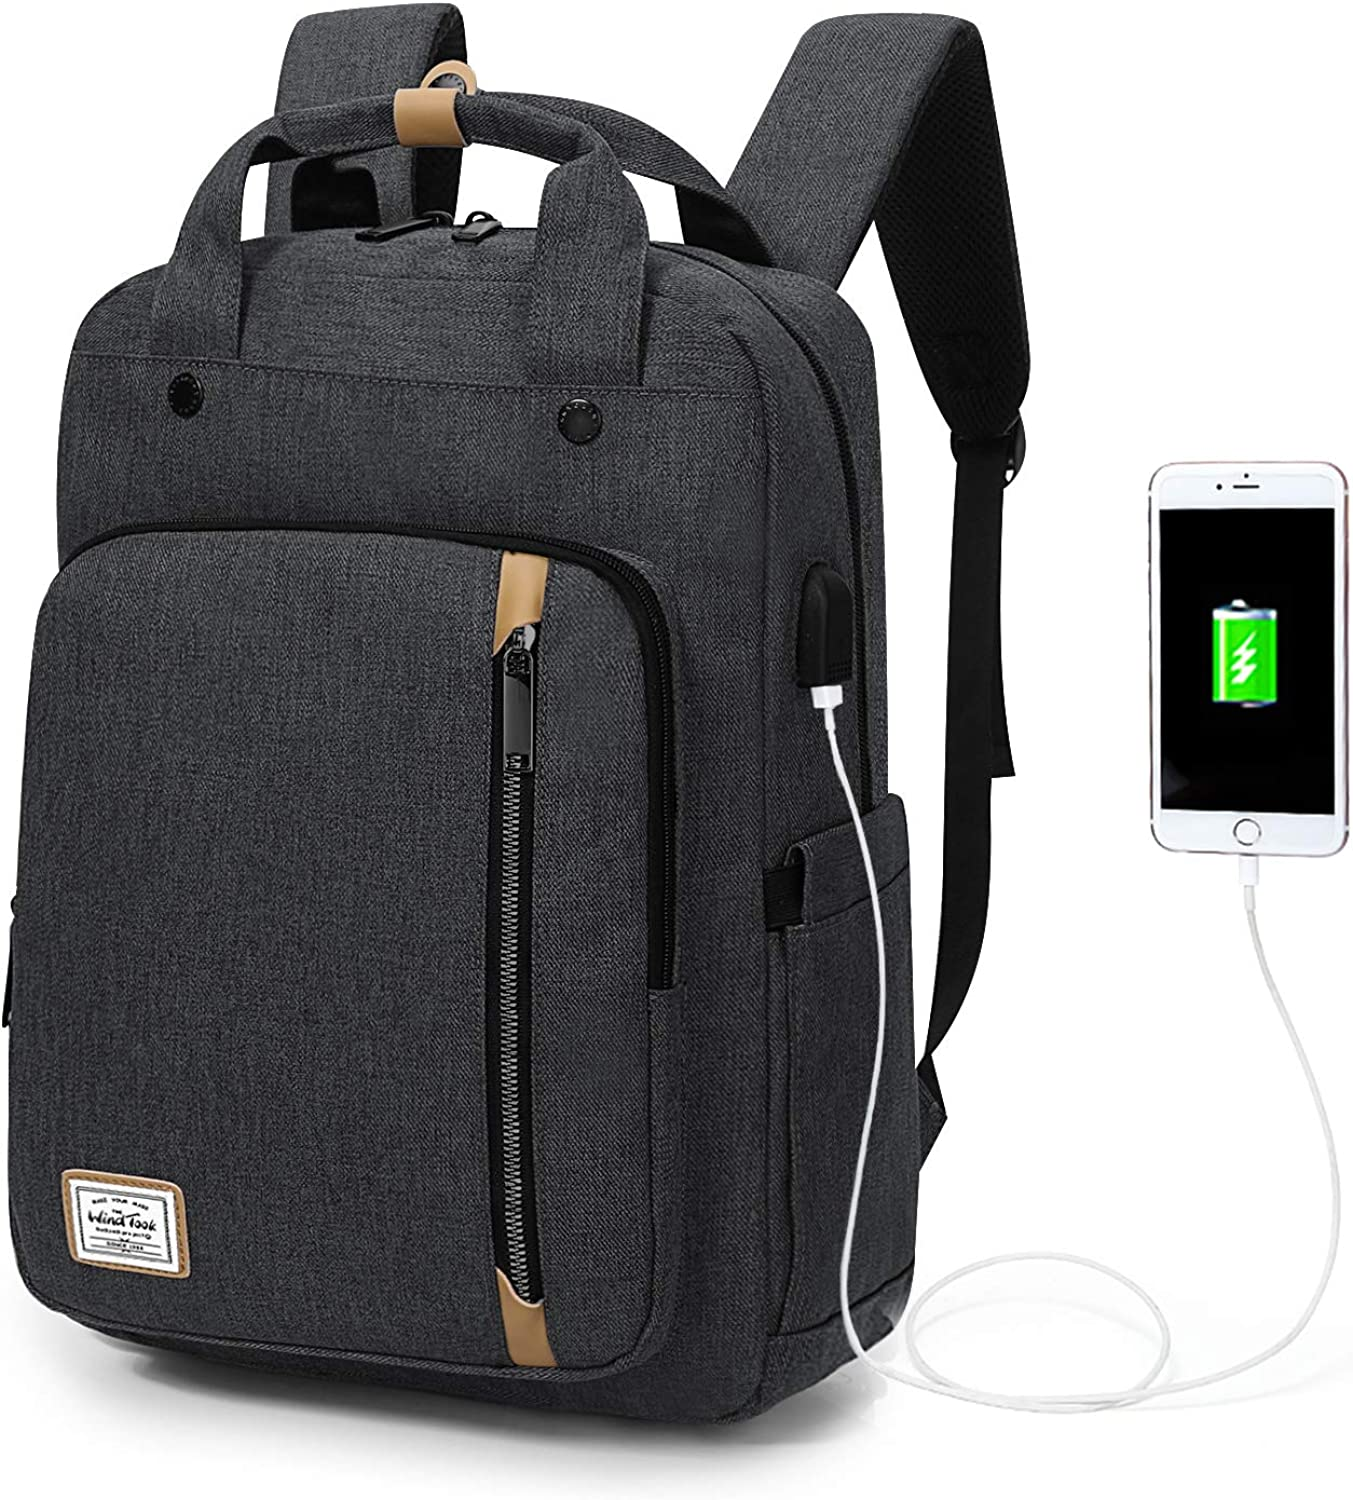 """WindTook Laptop Backpack for Women and Men Travel Computer Bag School College Daypack Suits Notebook Up to 15.6"""""""